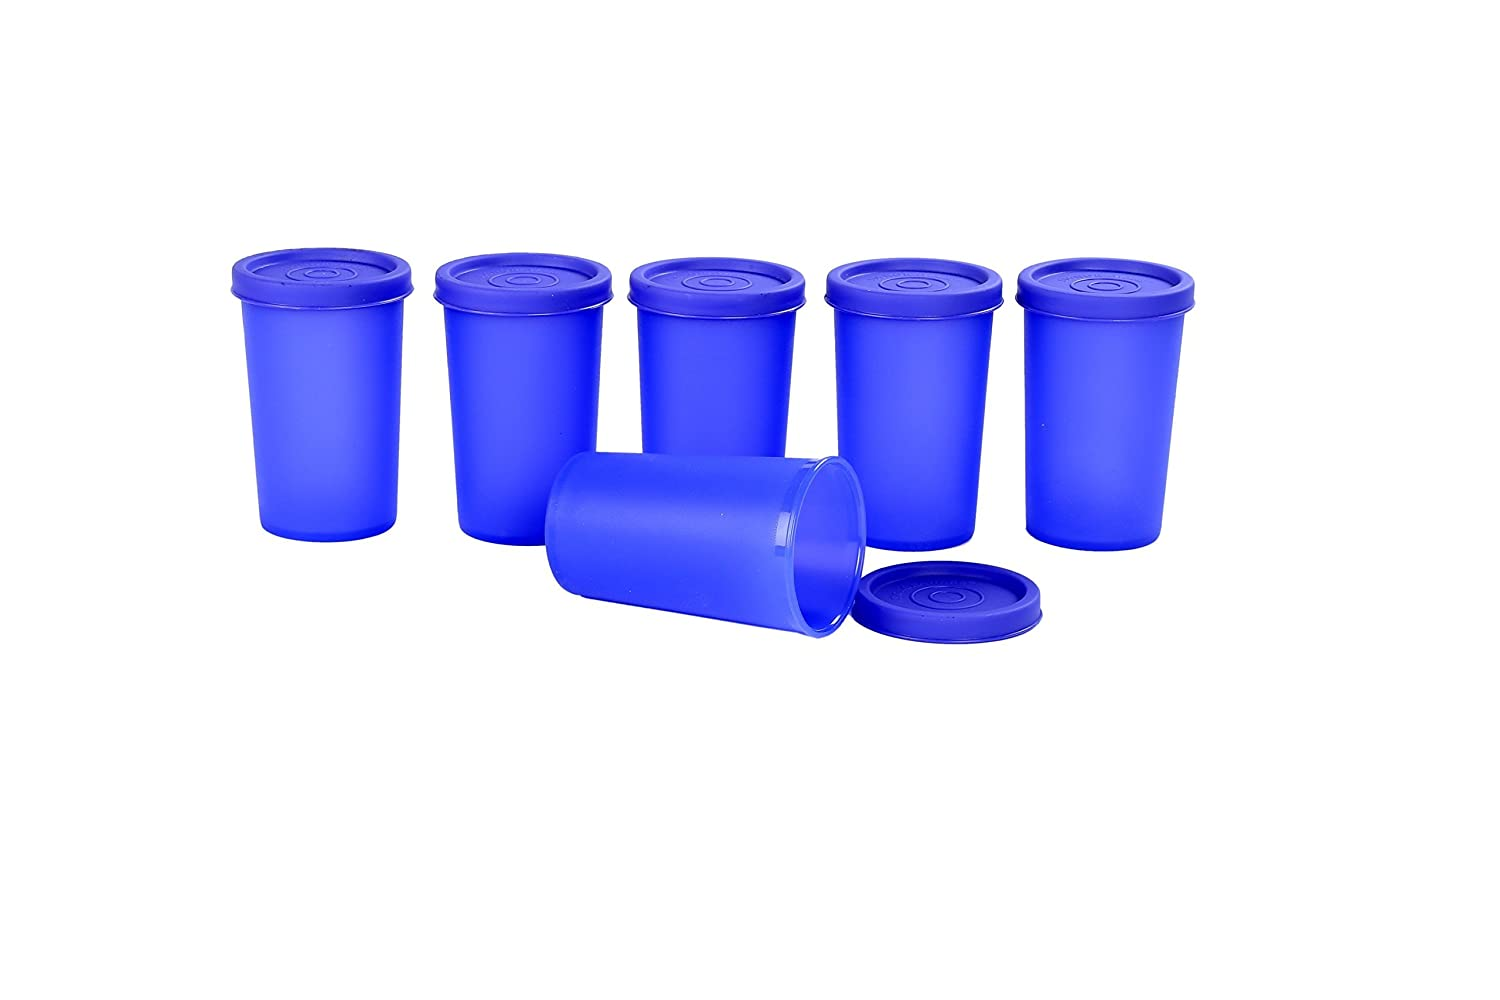 Signoraware Nano Round Big Plastic Container Set Set of 6